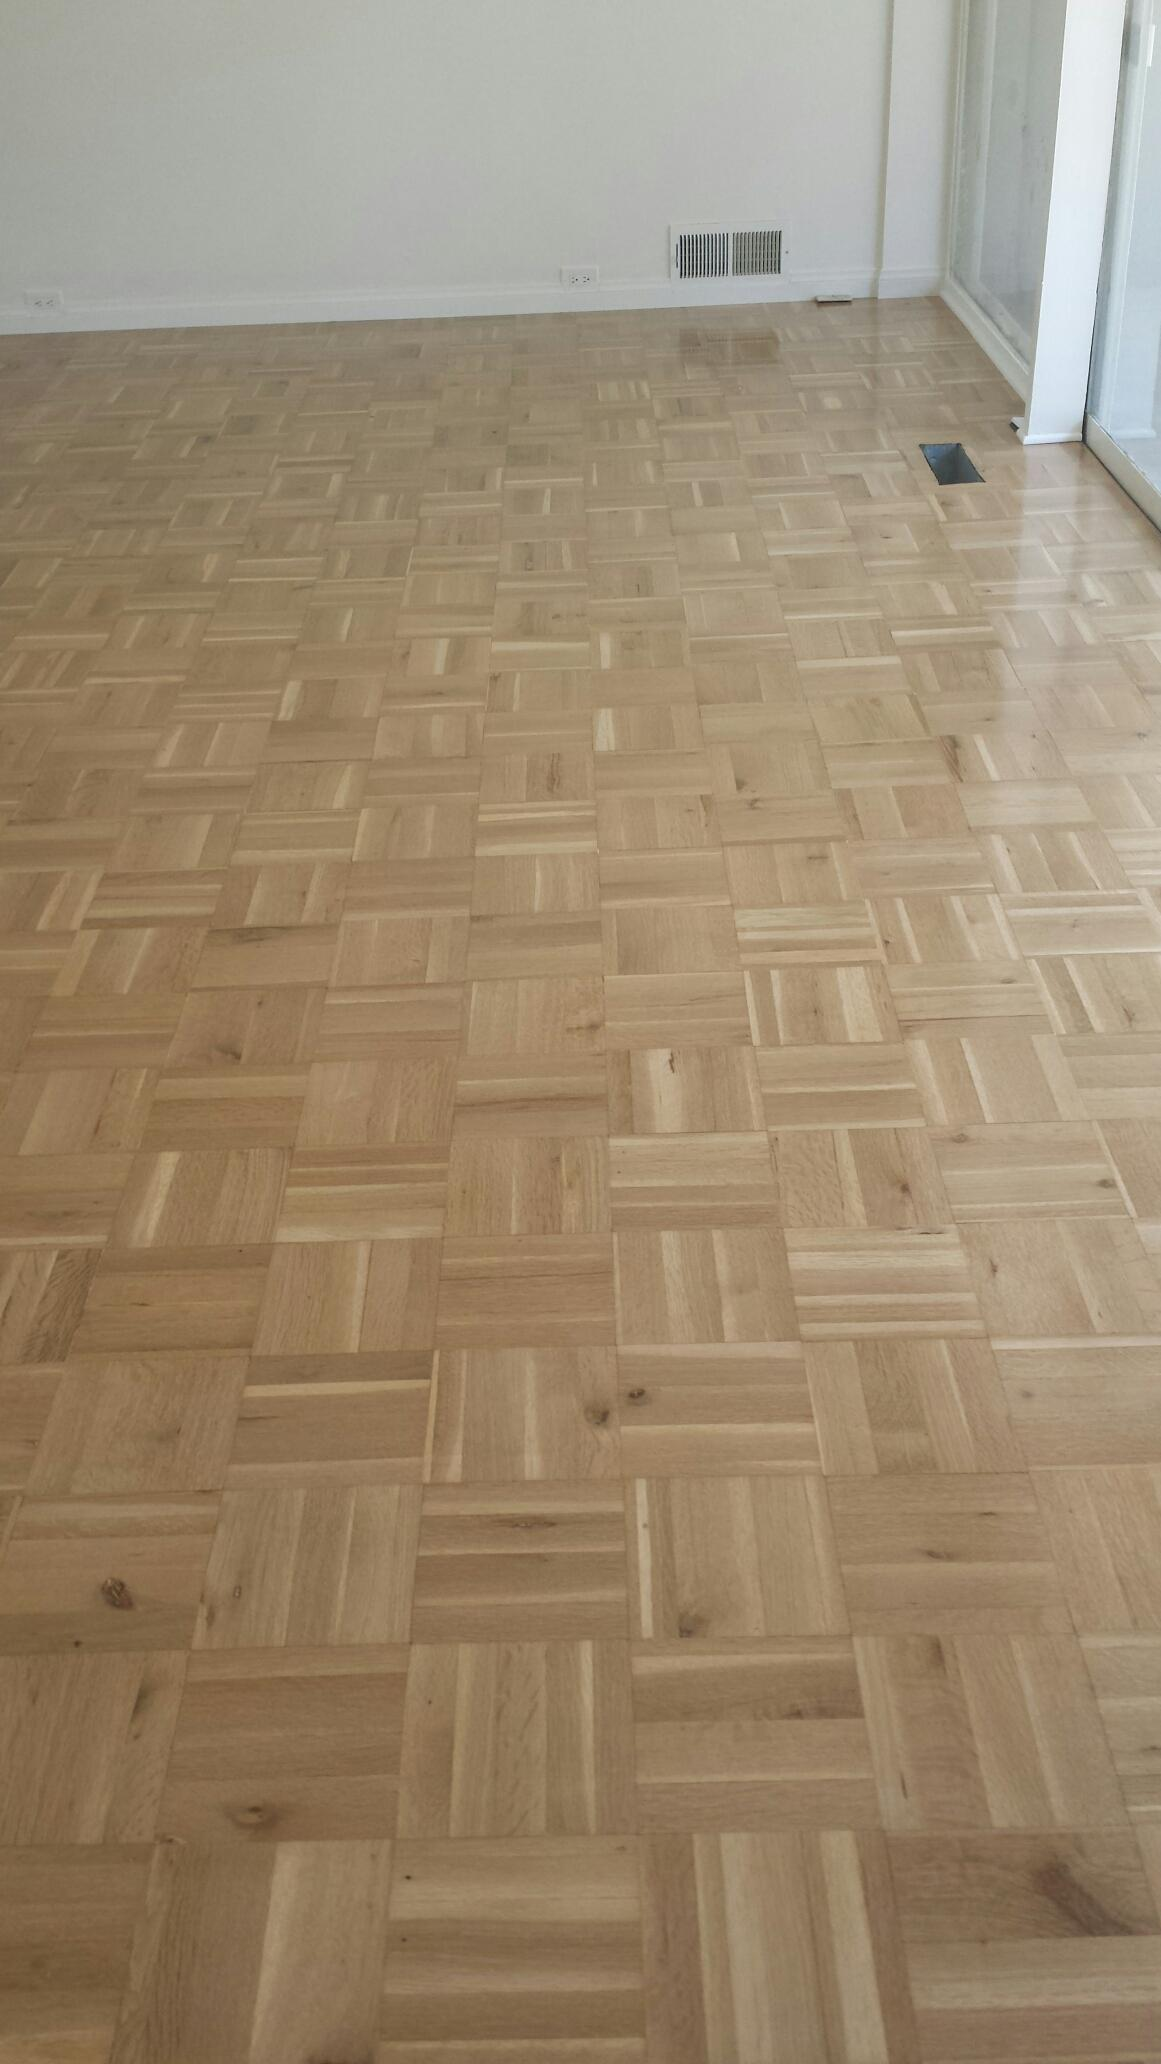 Parquet oak flooring sanded and finished in natural clear finish 4 coats of semi gloss polyurethane.